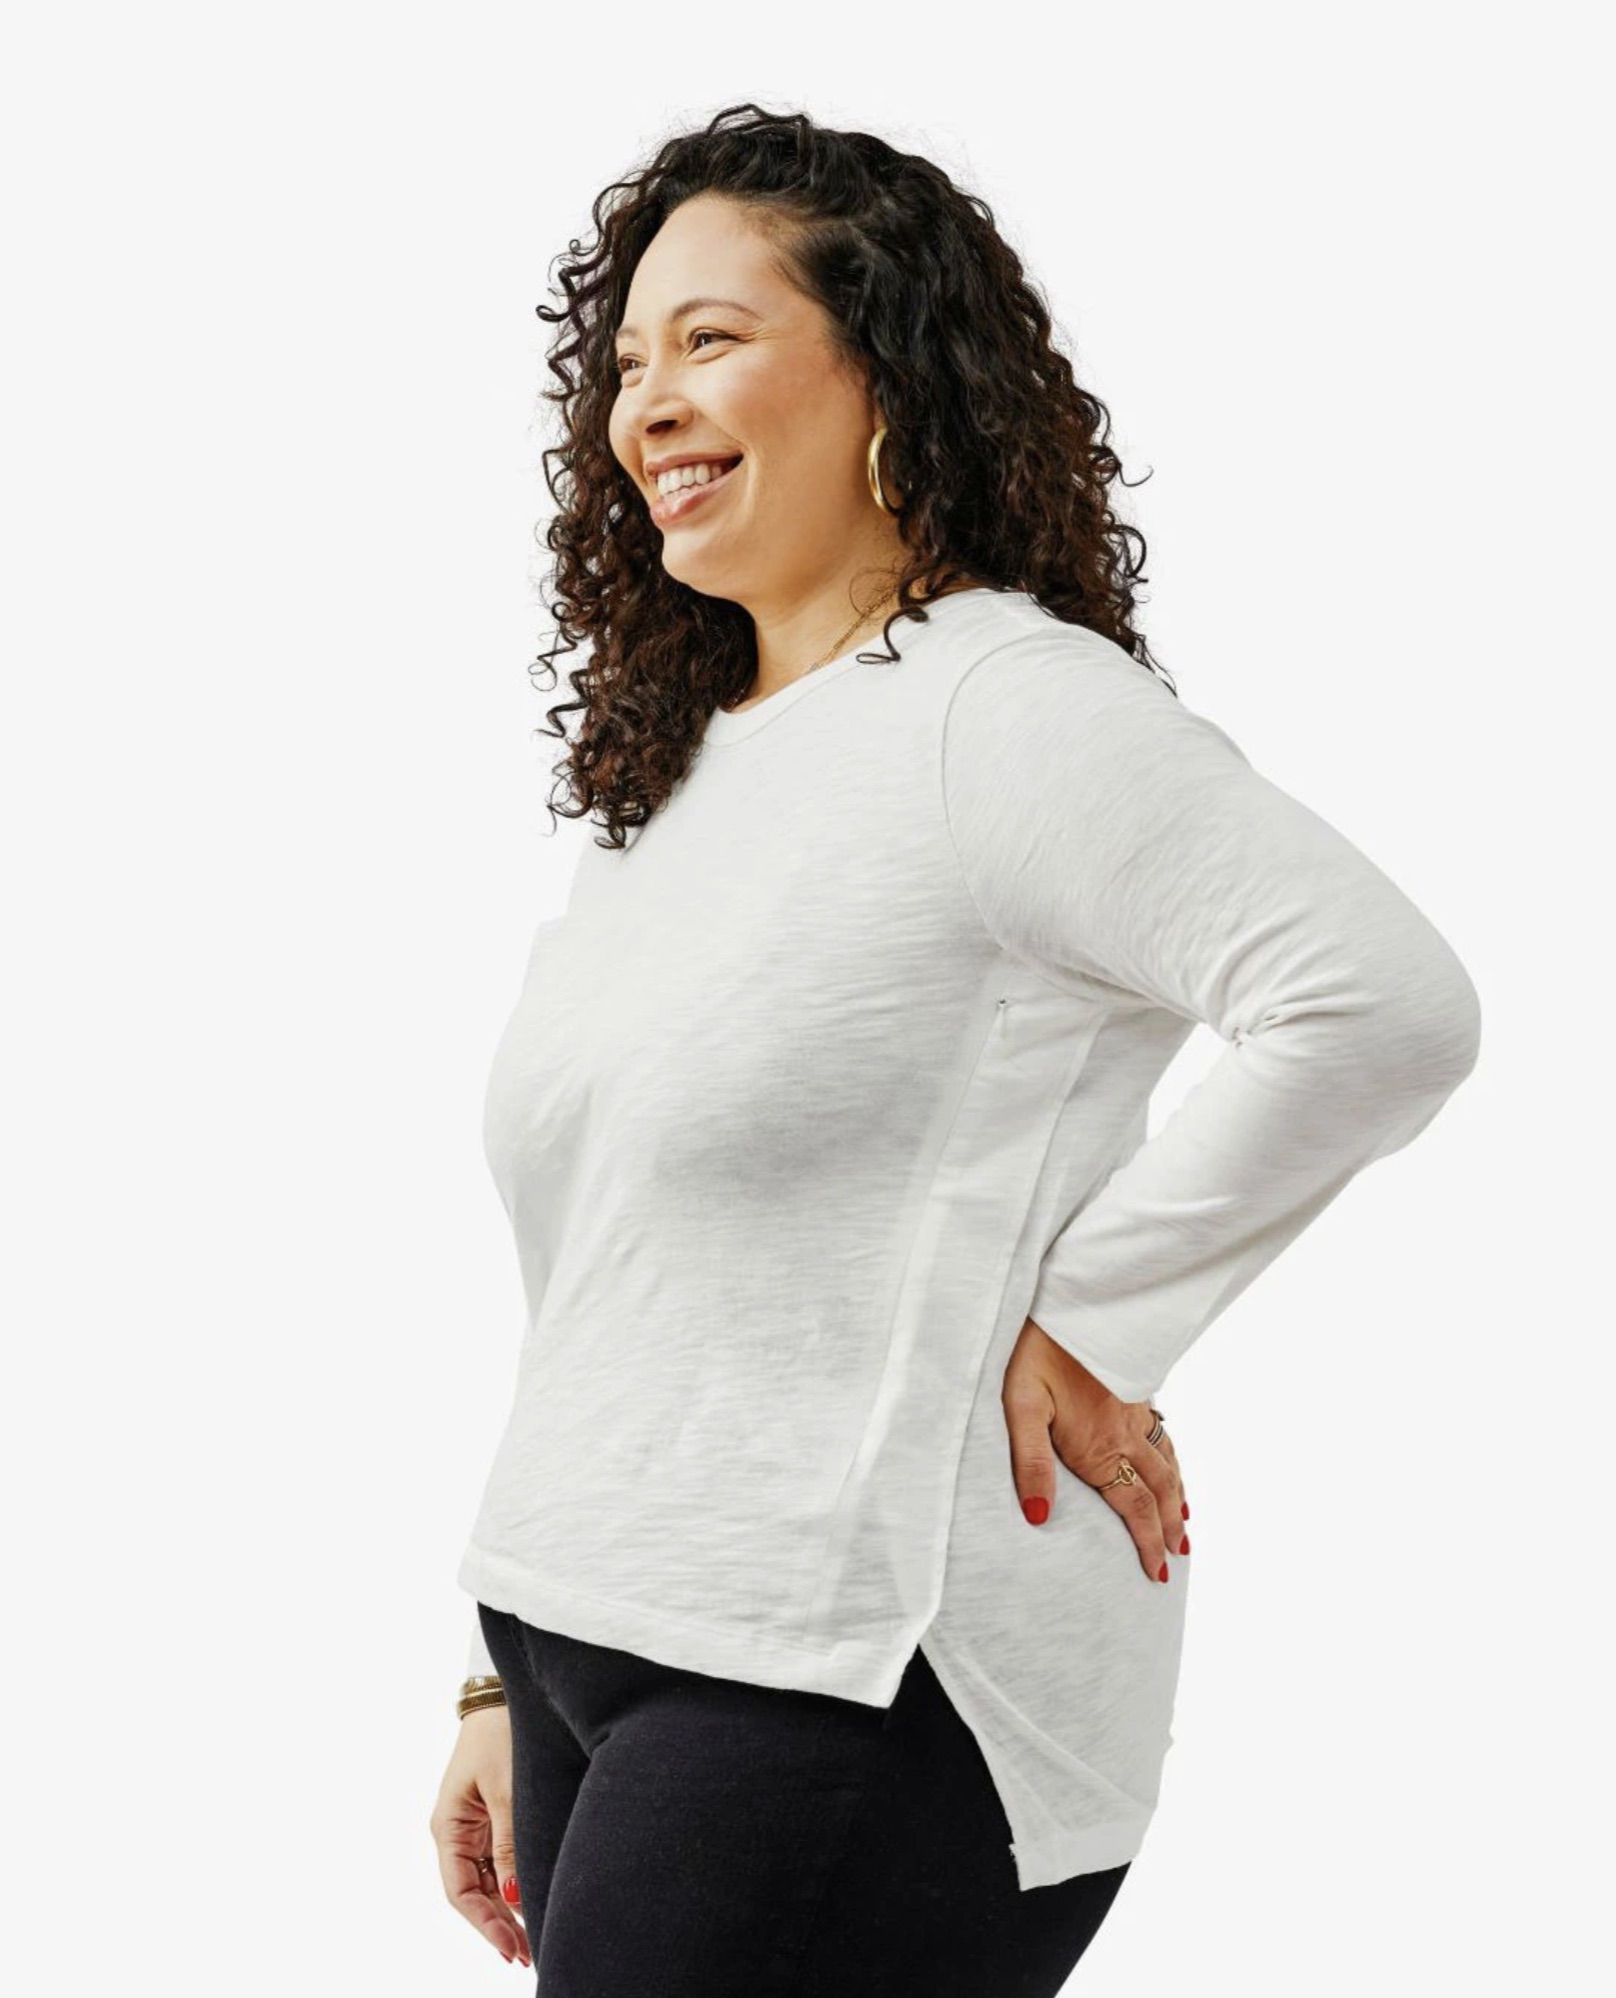 woman wearing a long sleeve white nursing tee shirt